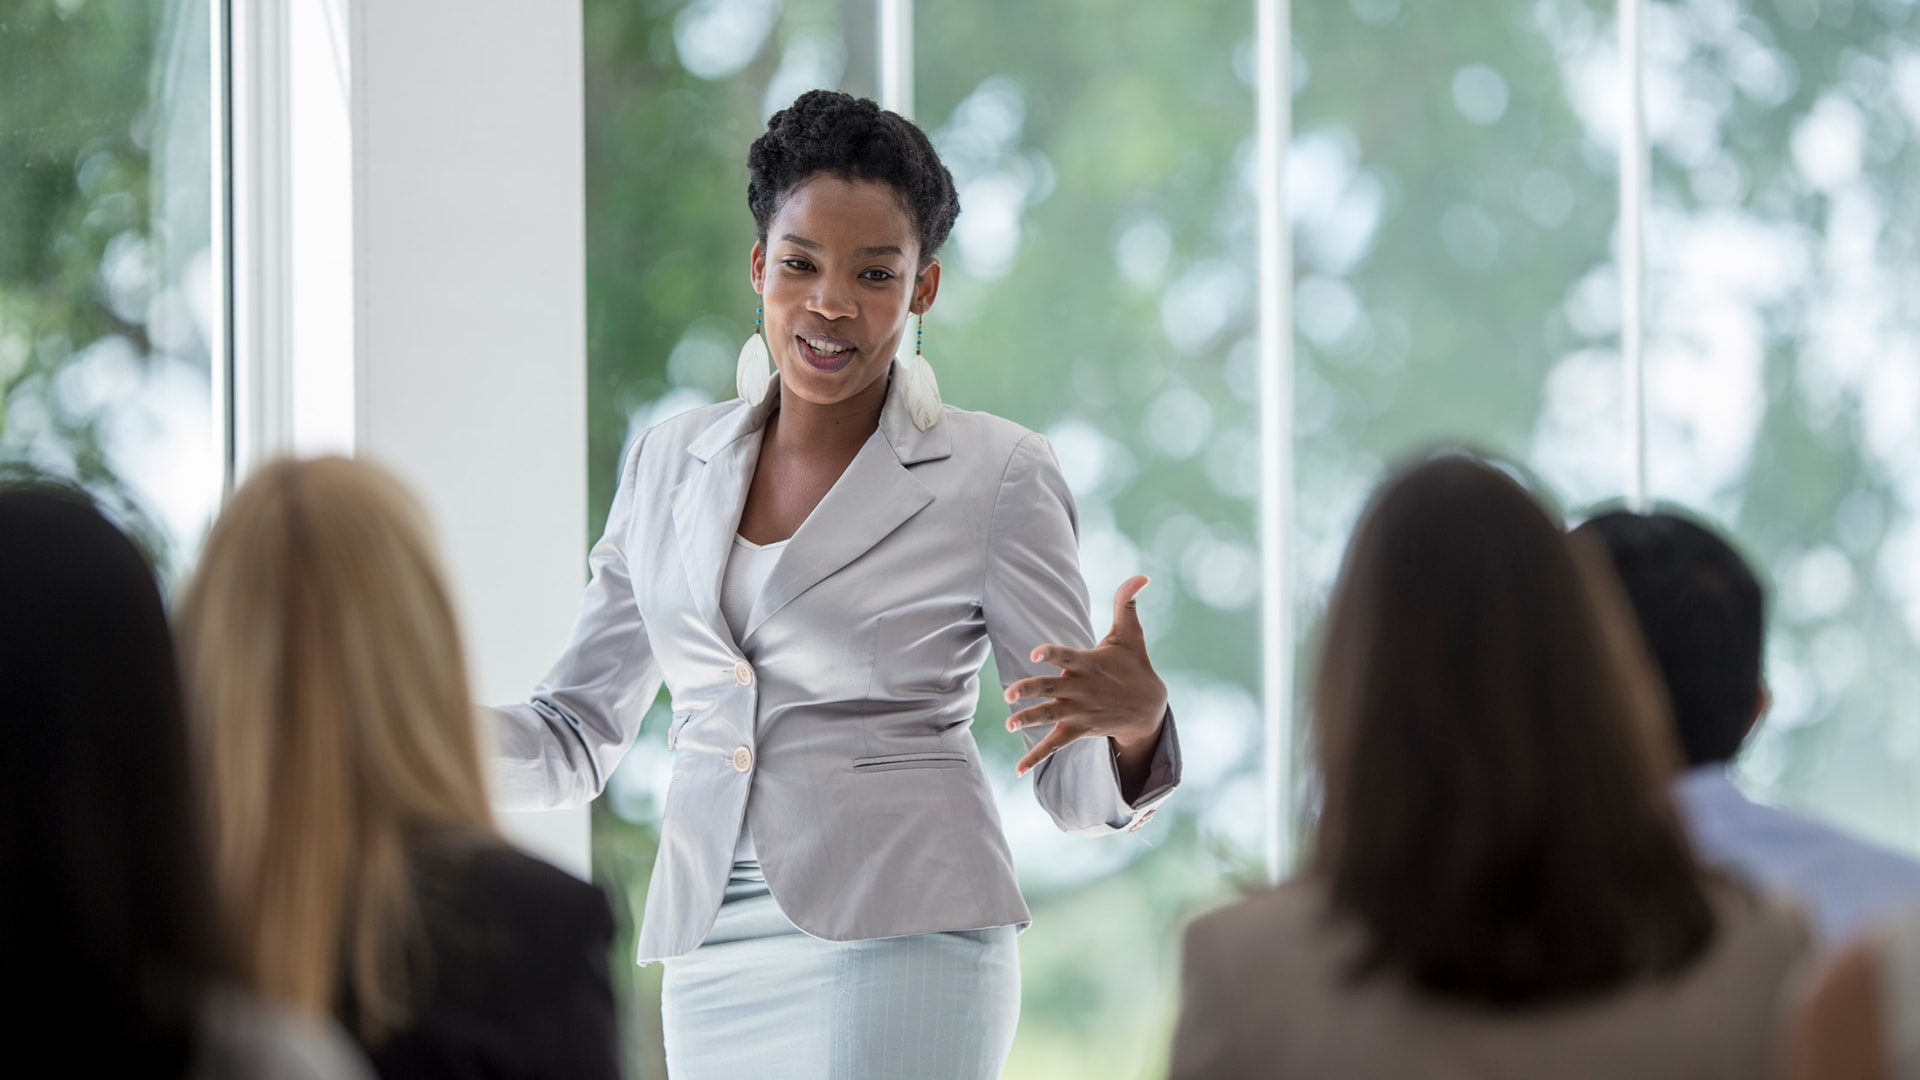 7 Phrases Every Leader Should Say More Often to Build Trust